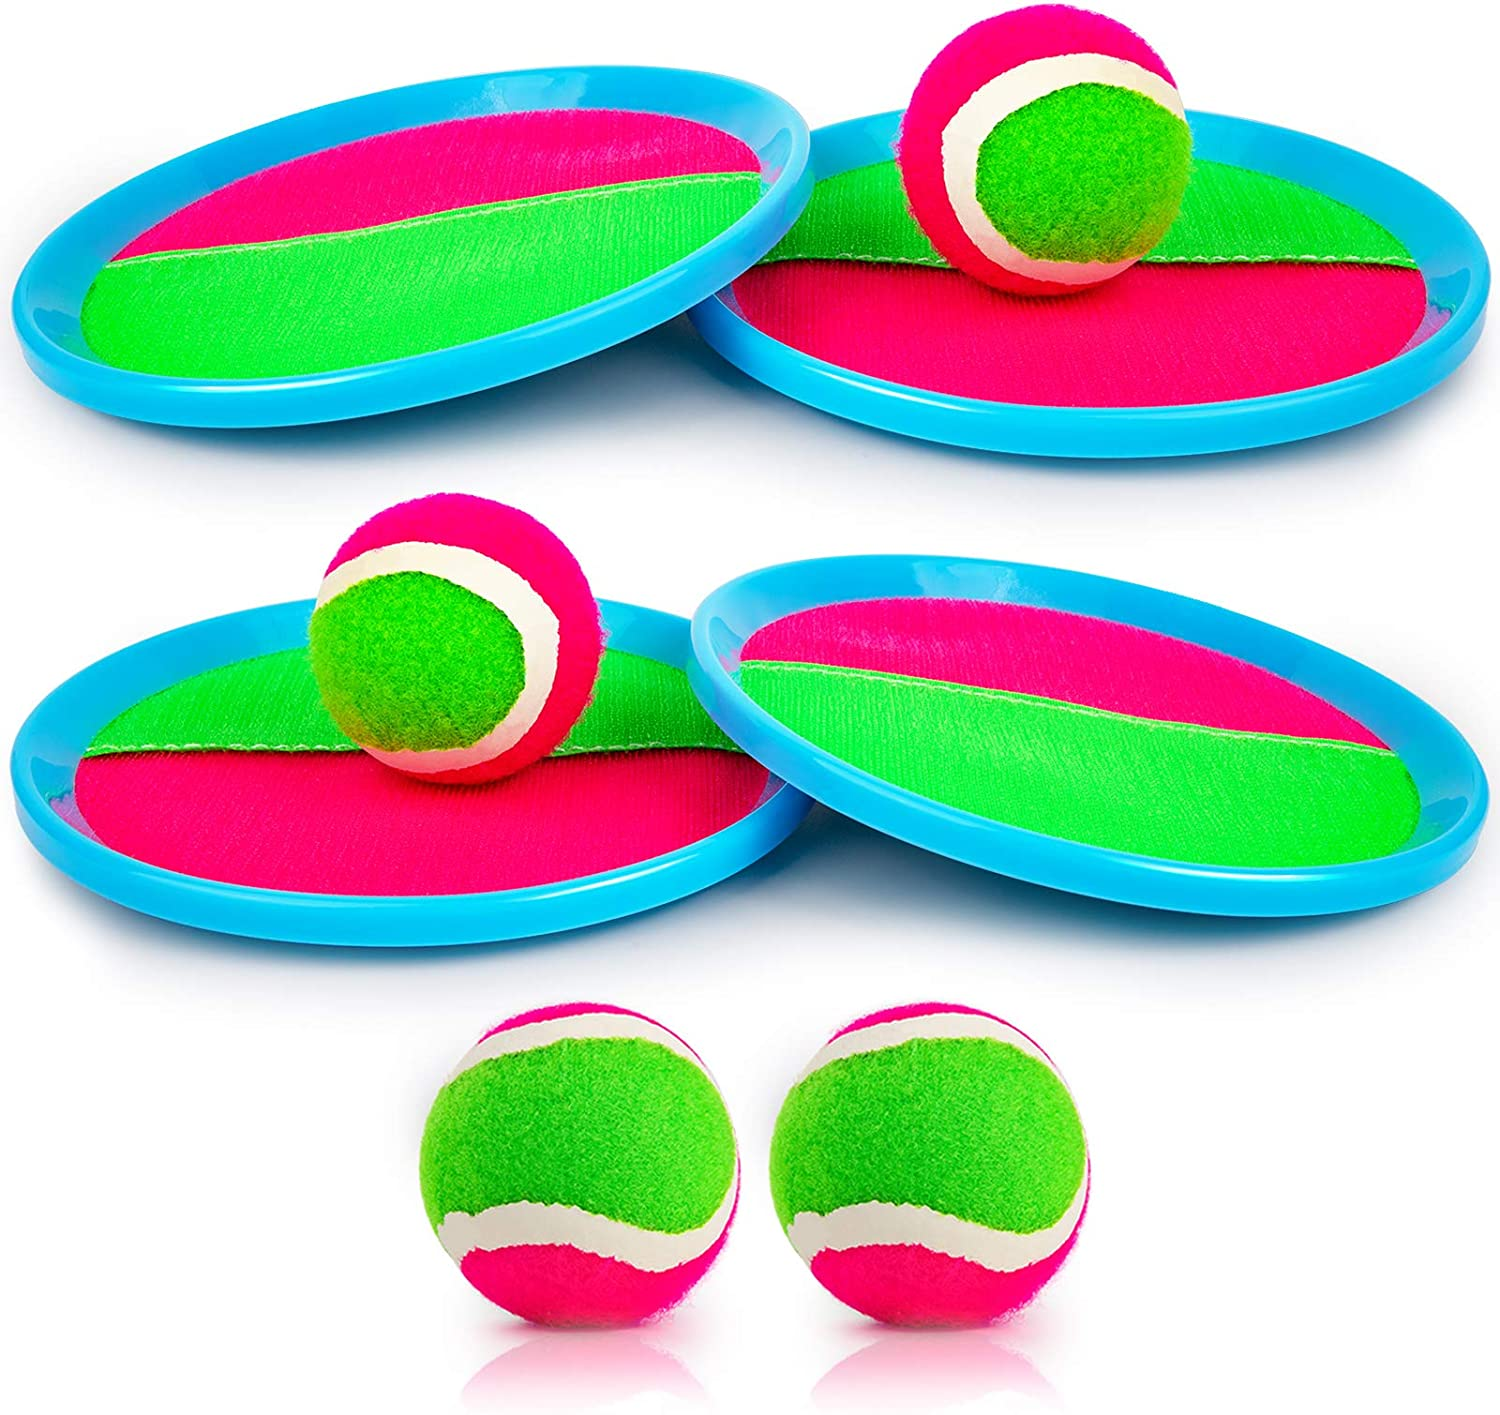 Aneco Paddle Toss and Catch Ball Set Toys Self Stick Paddle Game for Sports 6 Paddles and 6 Balls Beach with Storage Bag